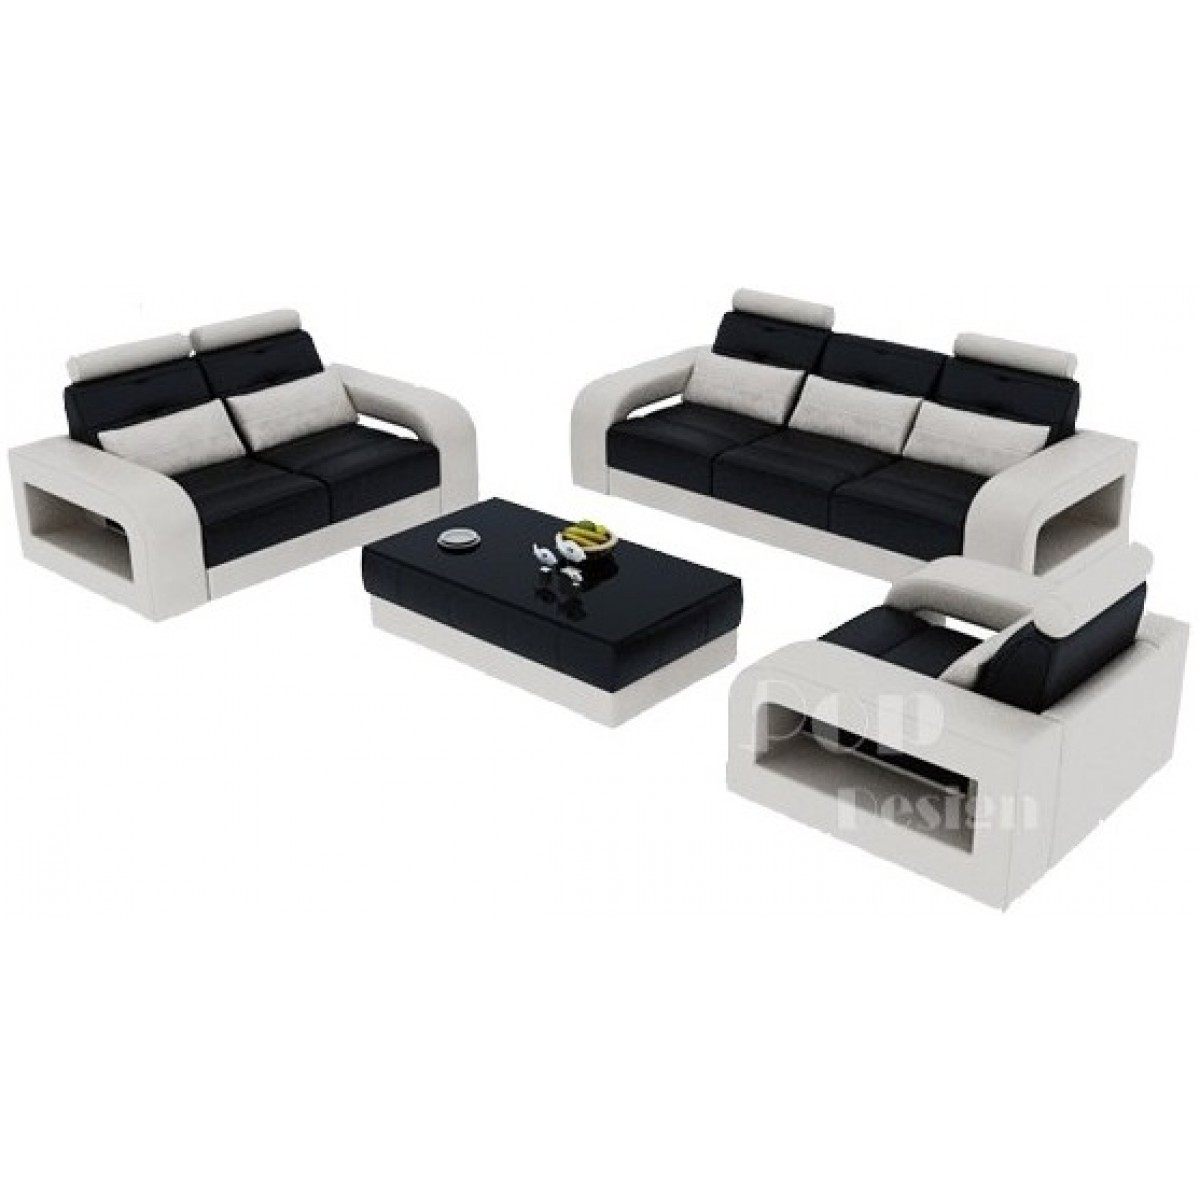 Salon set canap s personnalisable en cuir design salerno for Canape design cuir